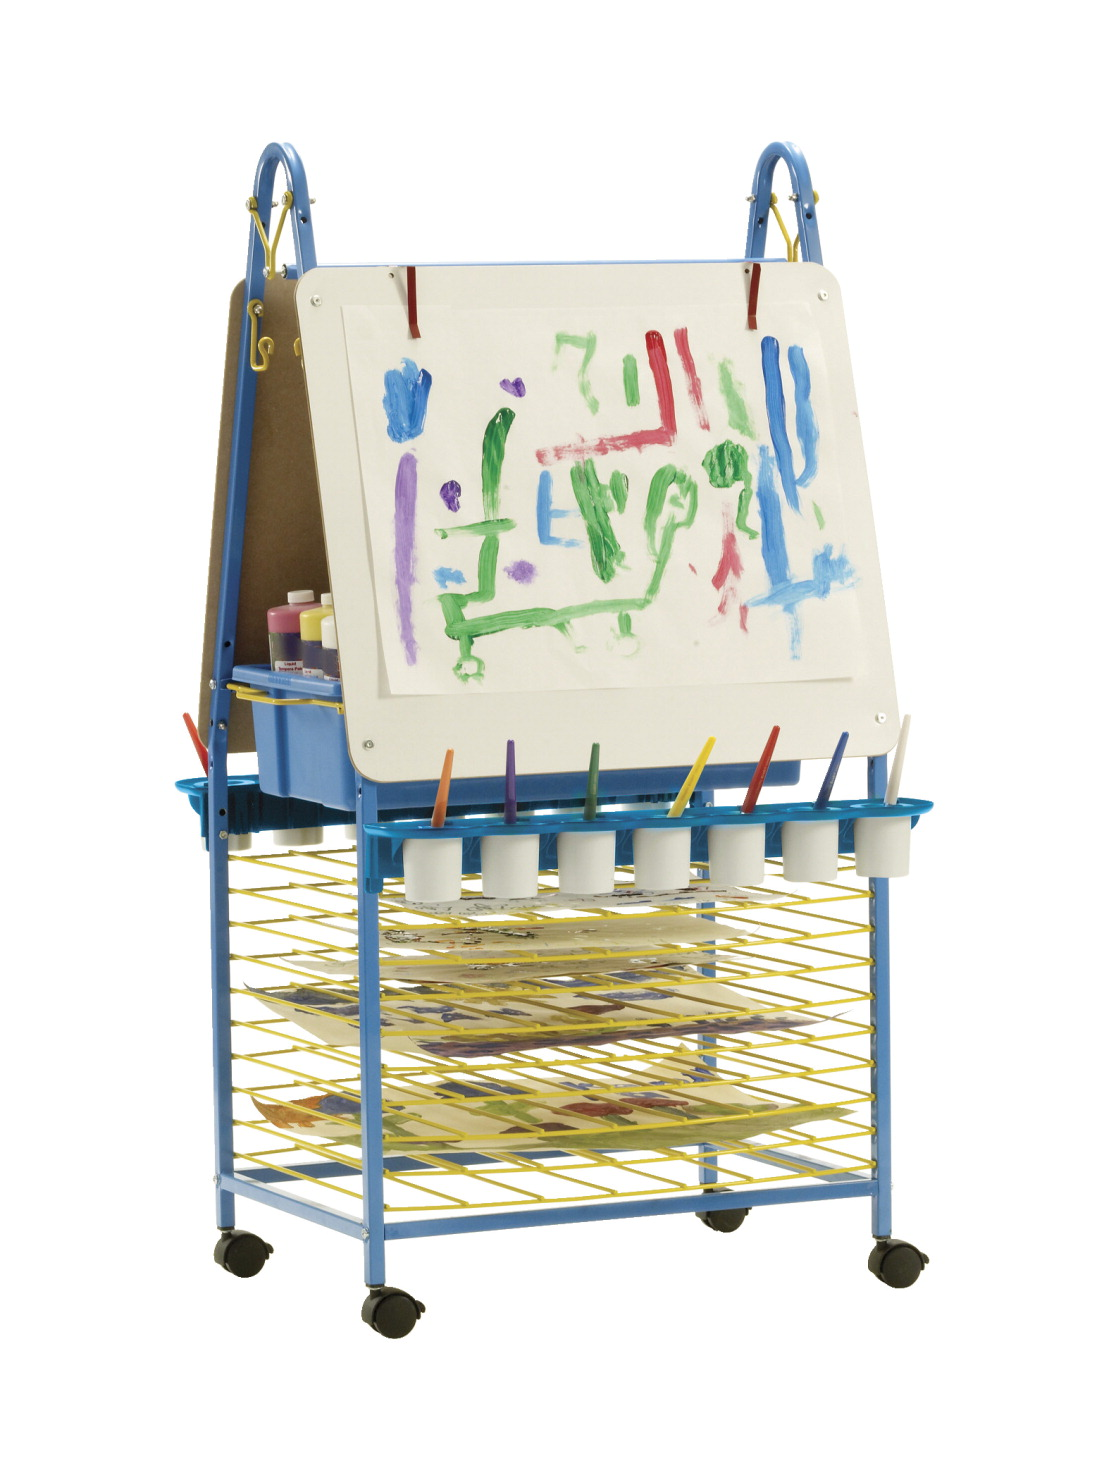 Copernicus Double-Sided Art Easel, 27-1/2 x 29-1/2 x 51 Inches